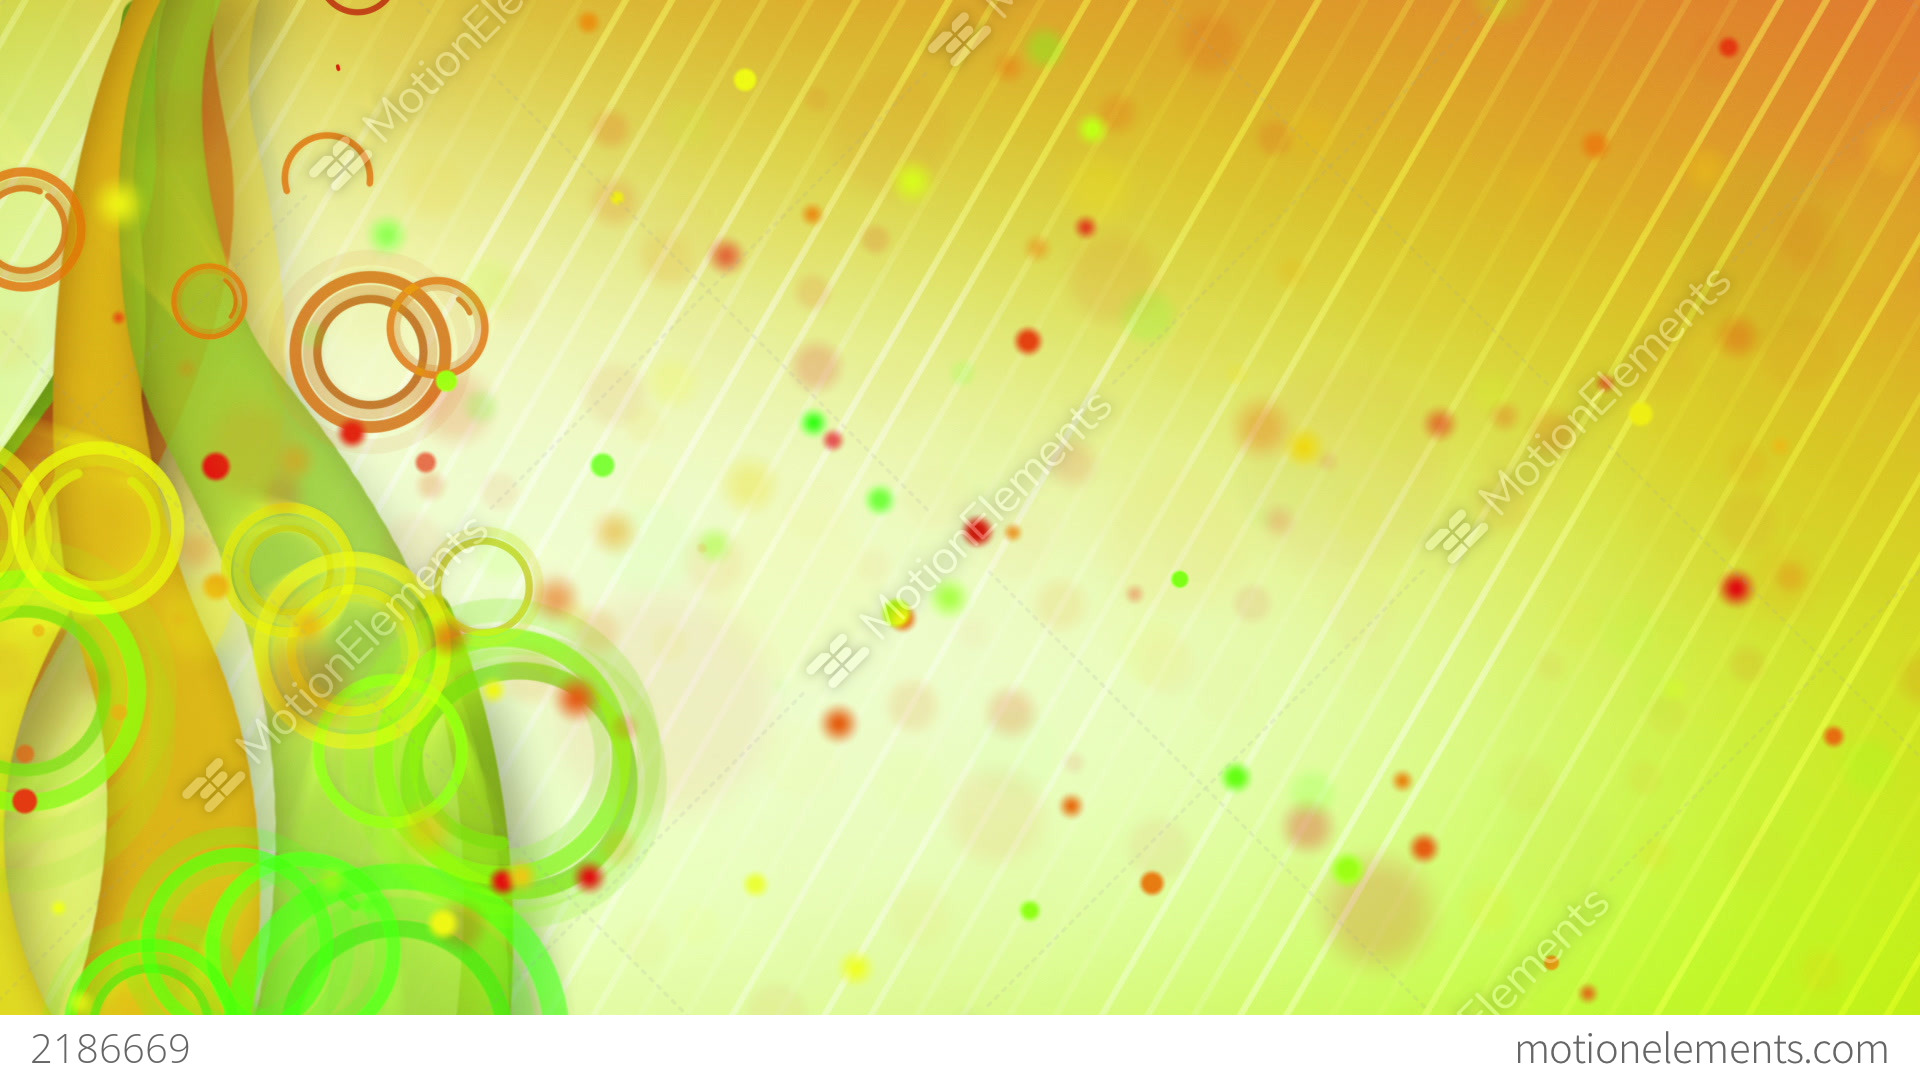 Particles Lines Orange Green Loop Background Stock ...